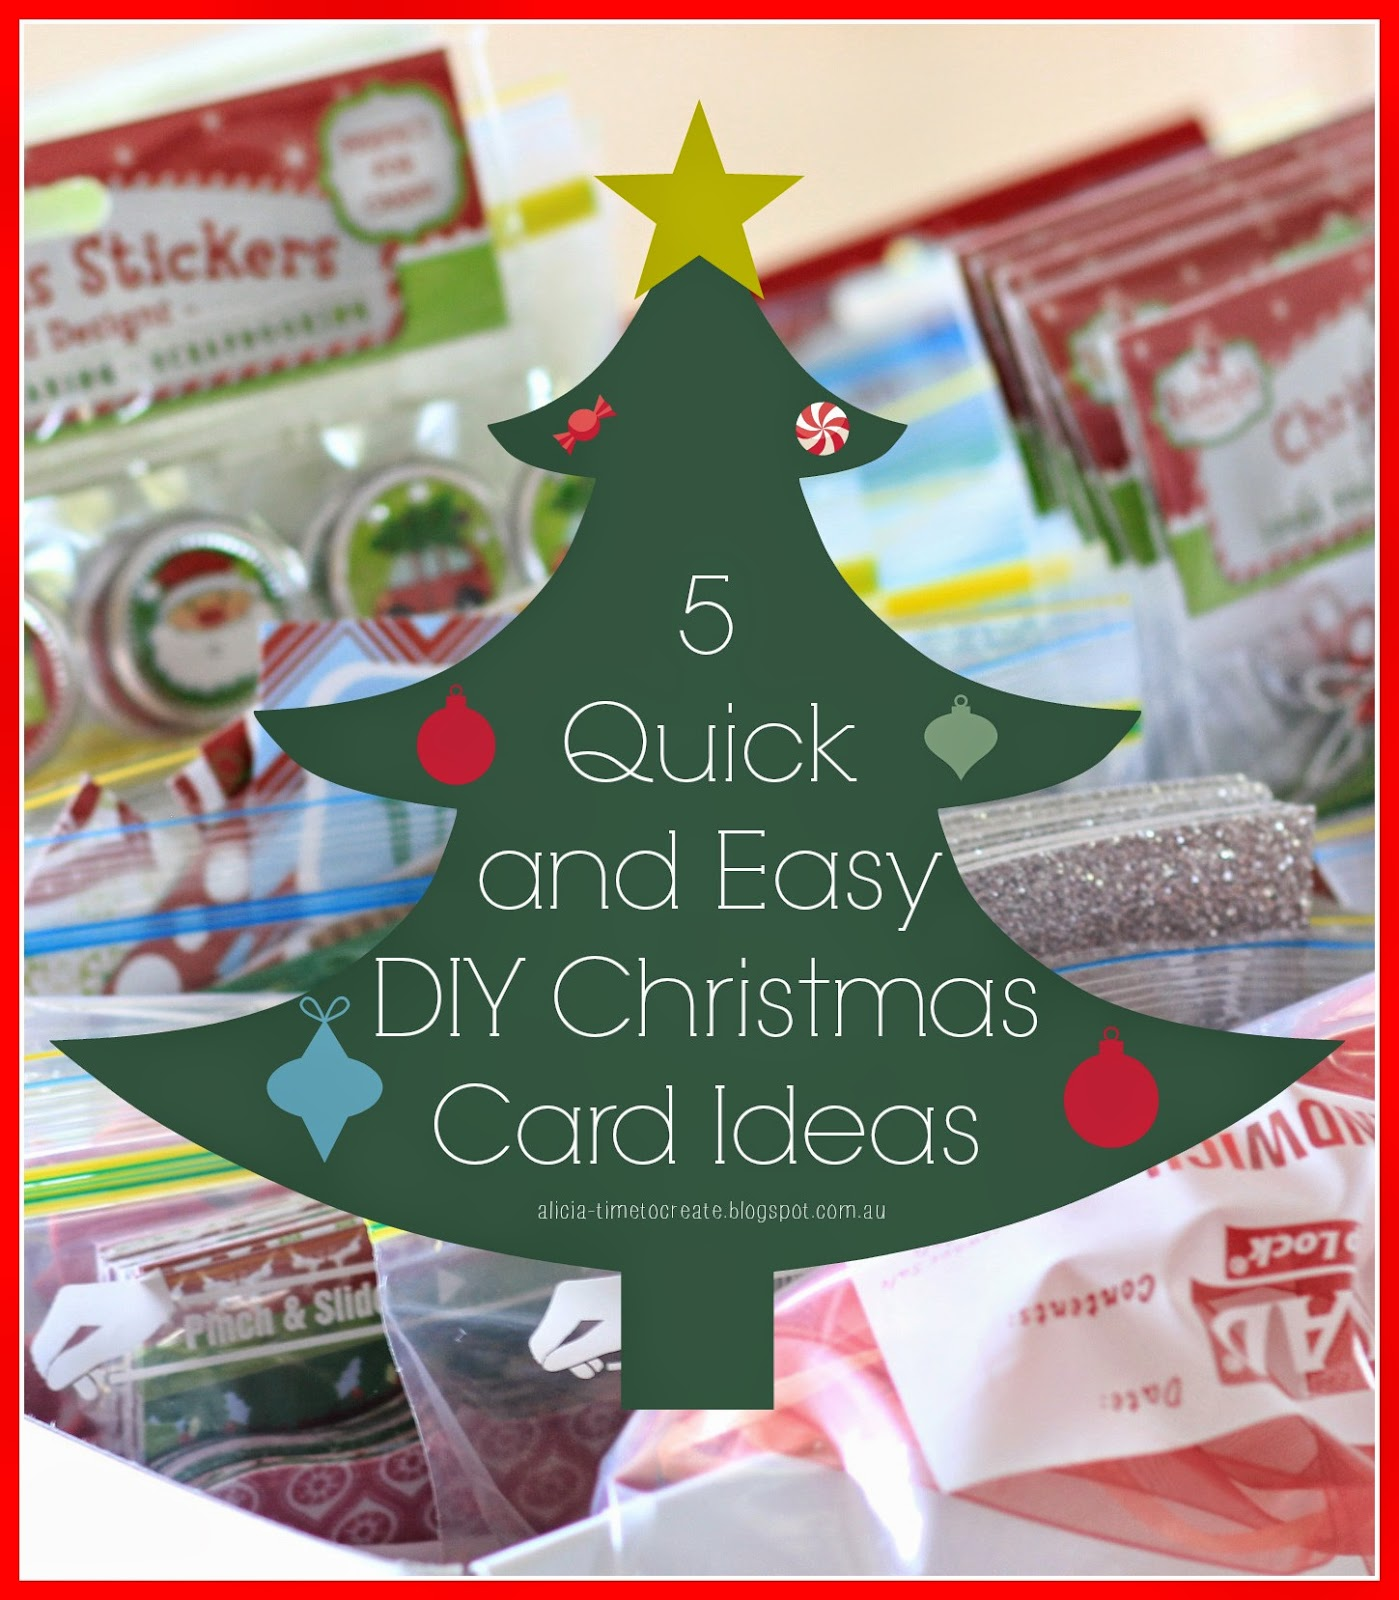 Time to create 5 quick and easy diy christmas card ideas for Christmas ideas for christmas cards